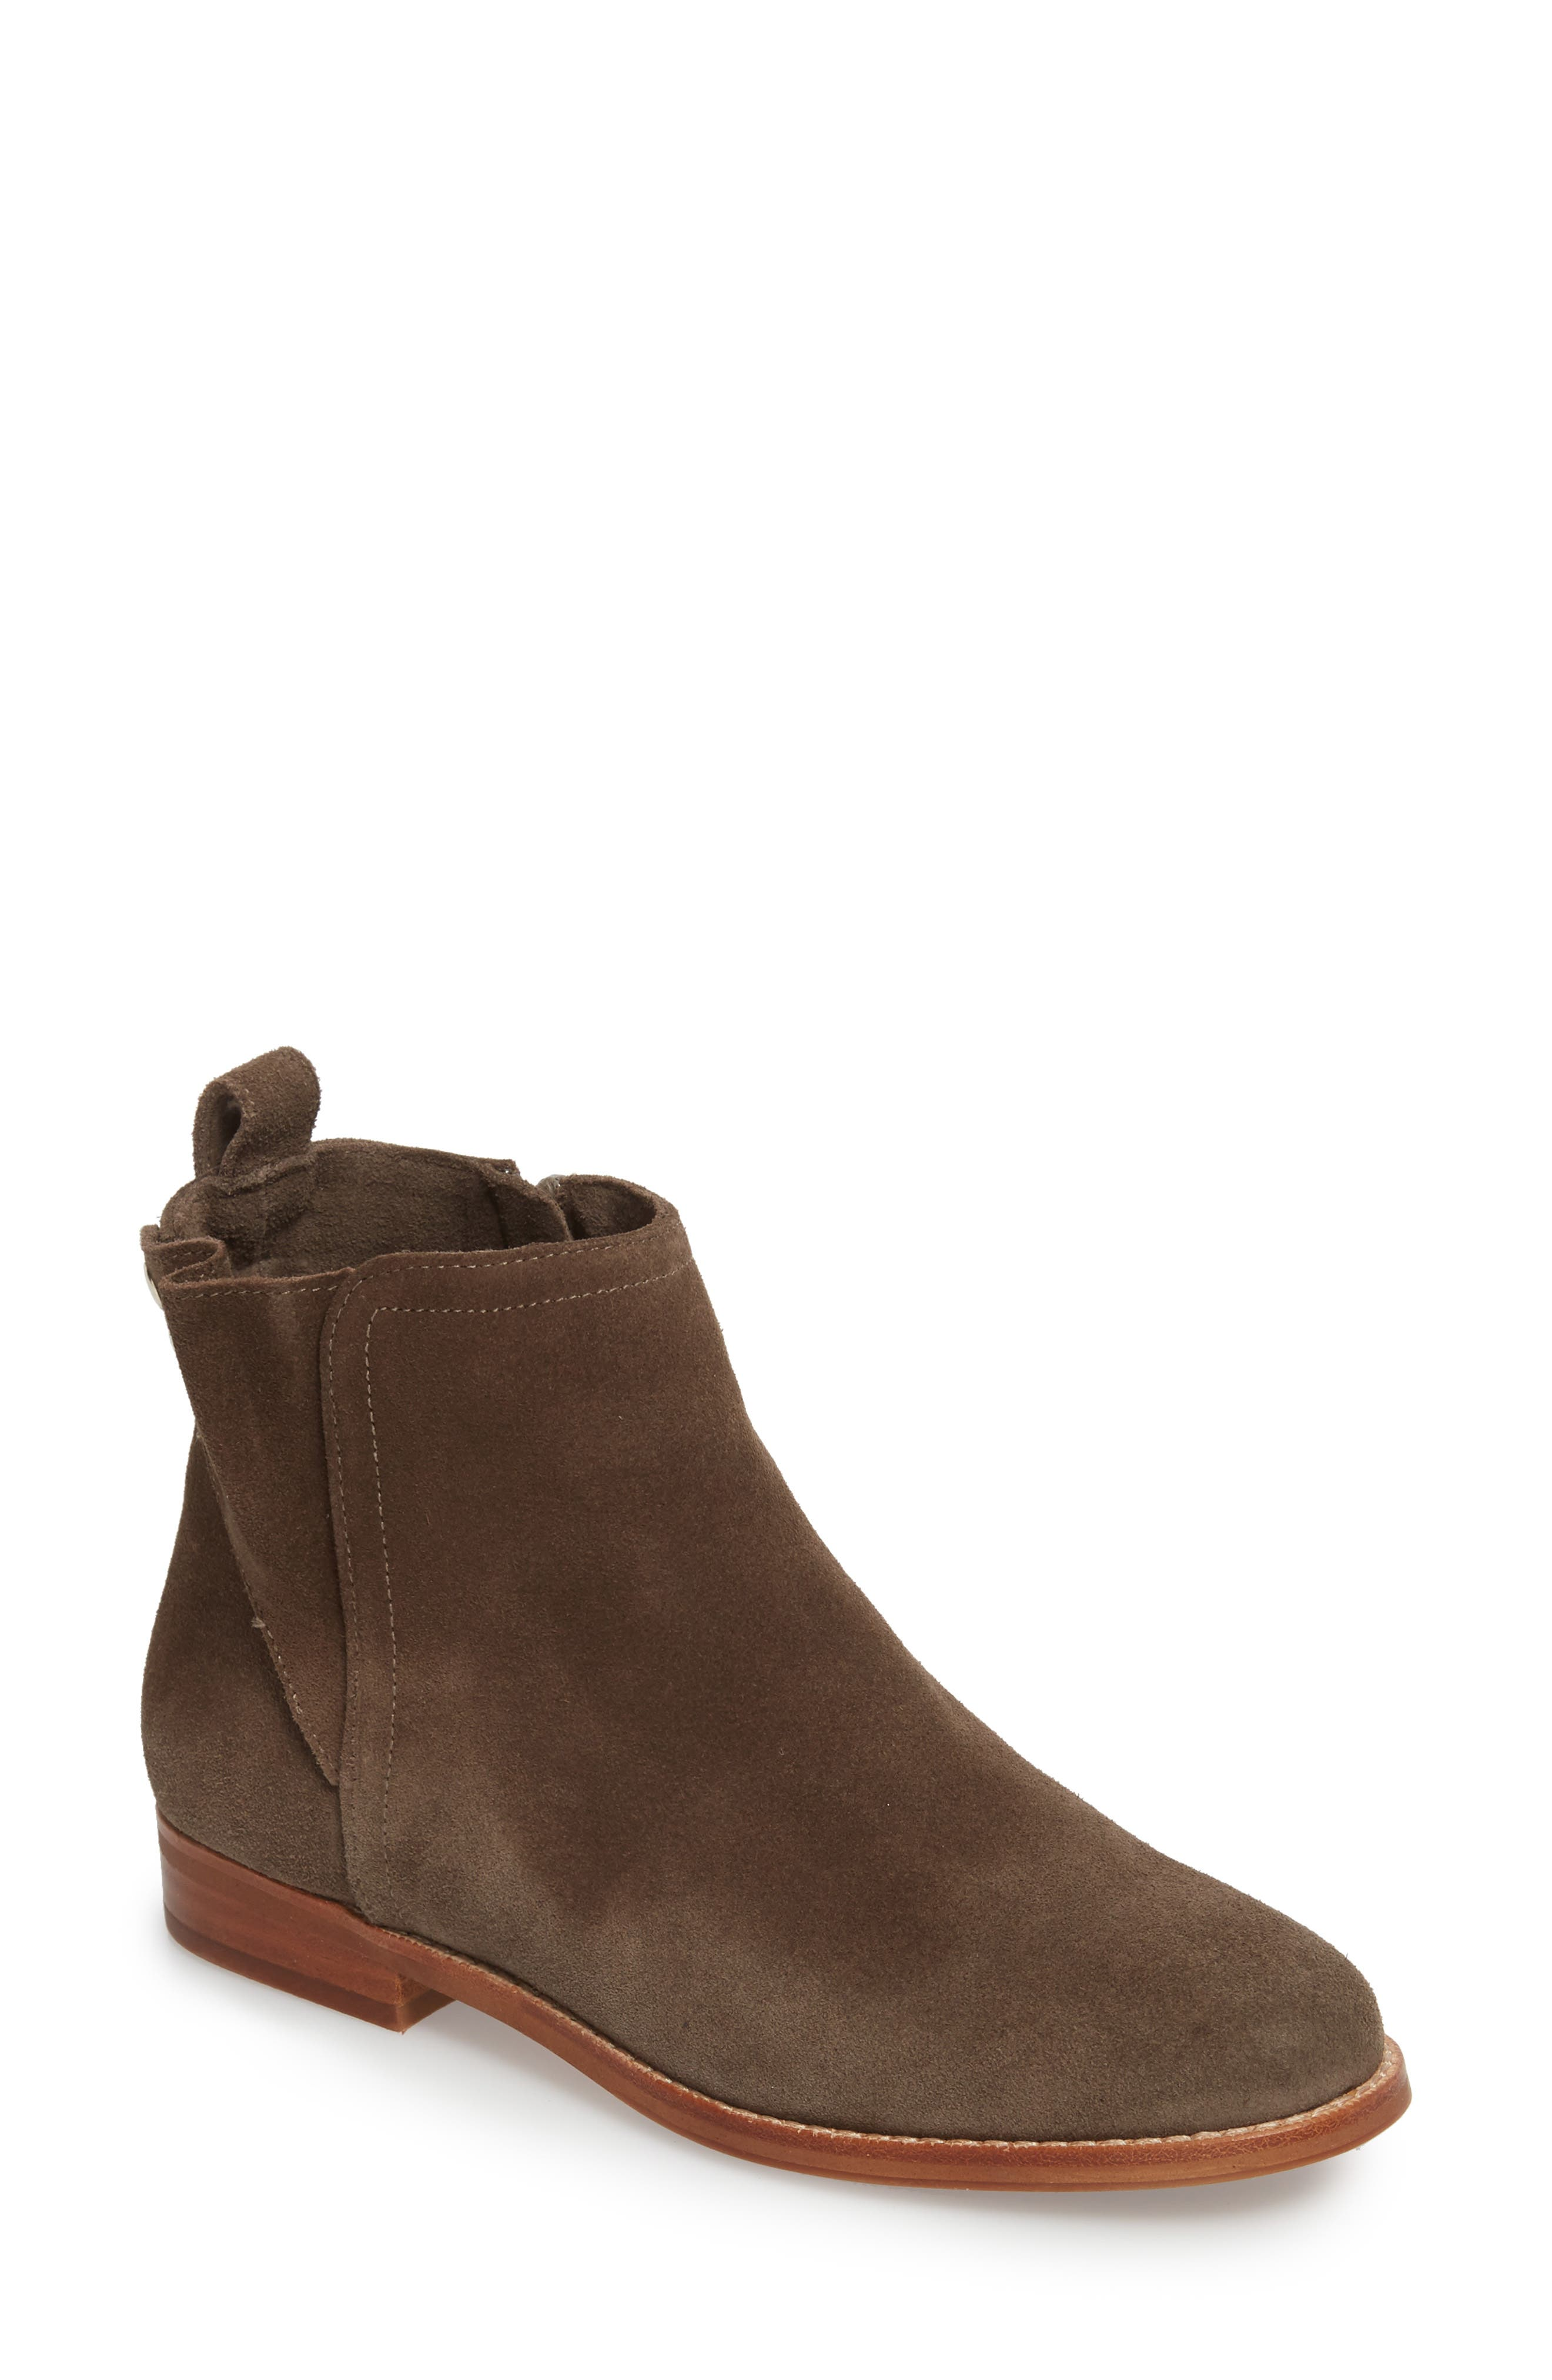 Main Image - Sole Society Barbora Gusseted Bootie (Women)